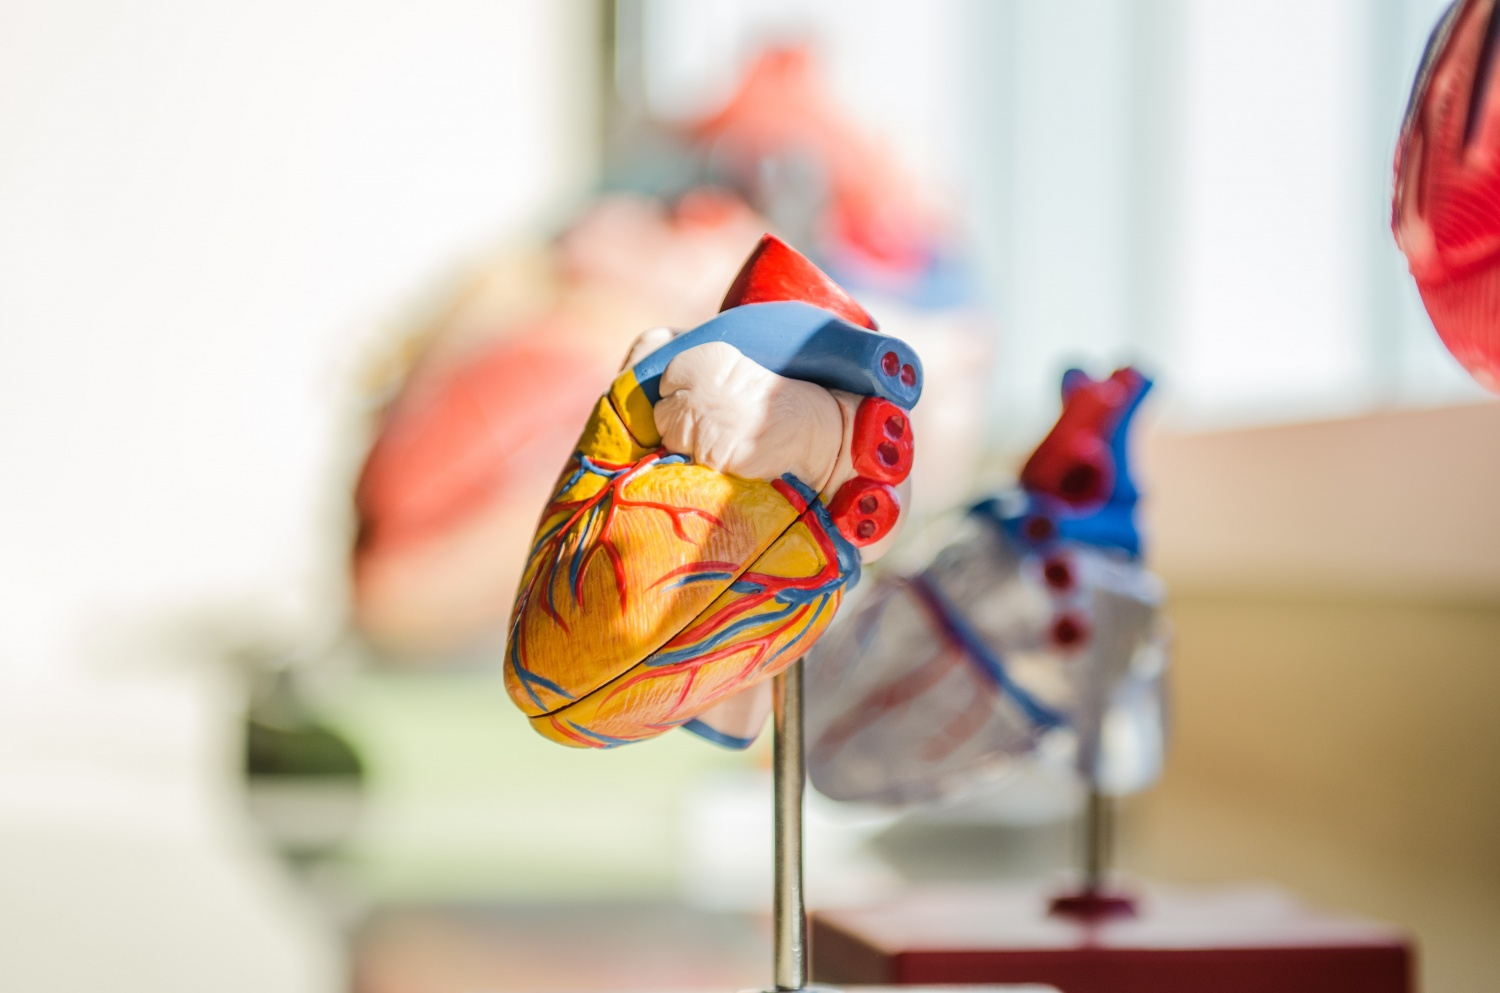 Artificial Intelligence Technology for Heart Imaging Can be Used as Tool to Help Doctors Examine Scar Tissue